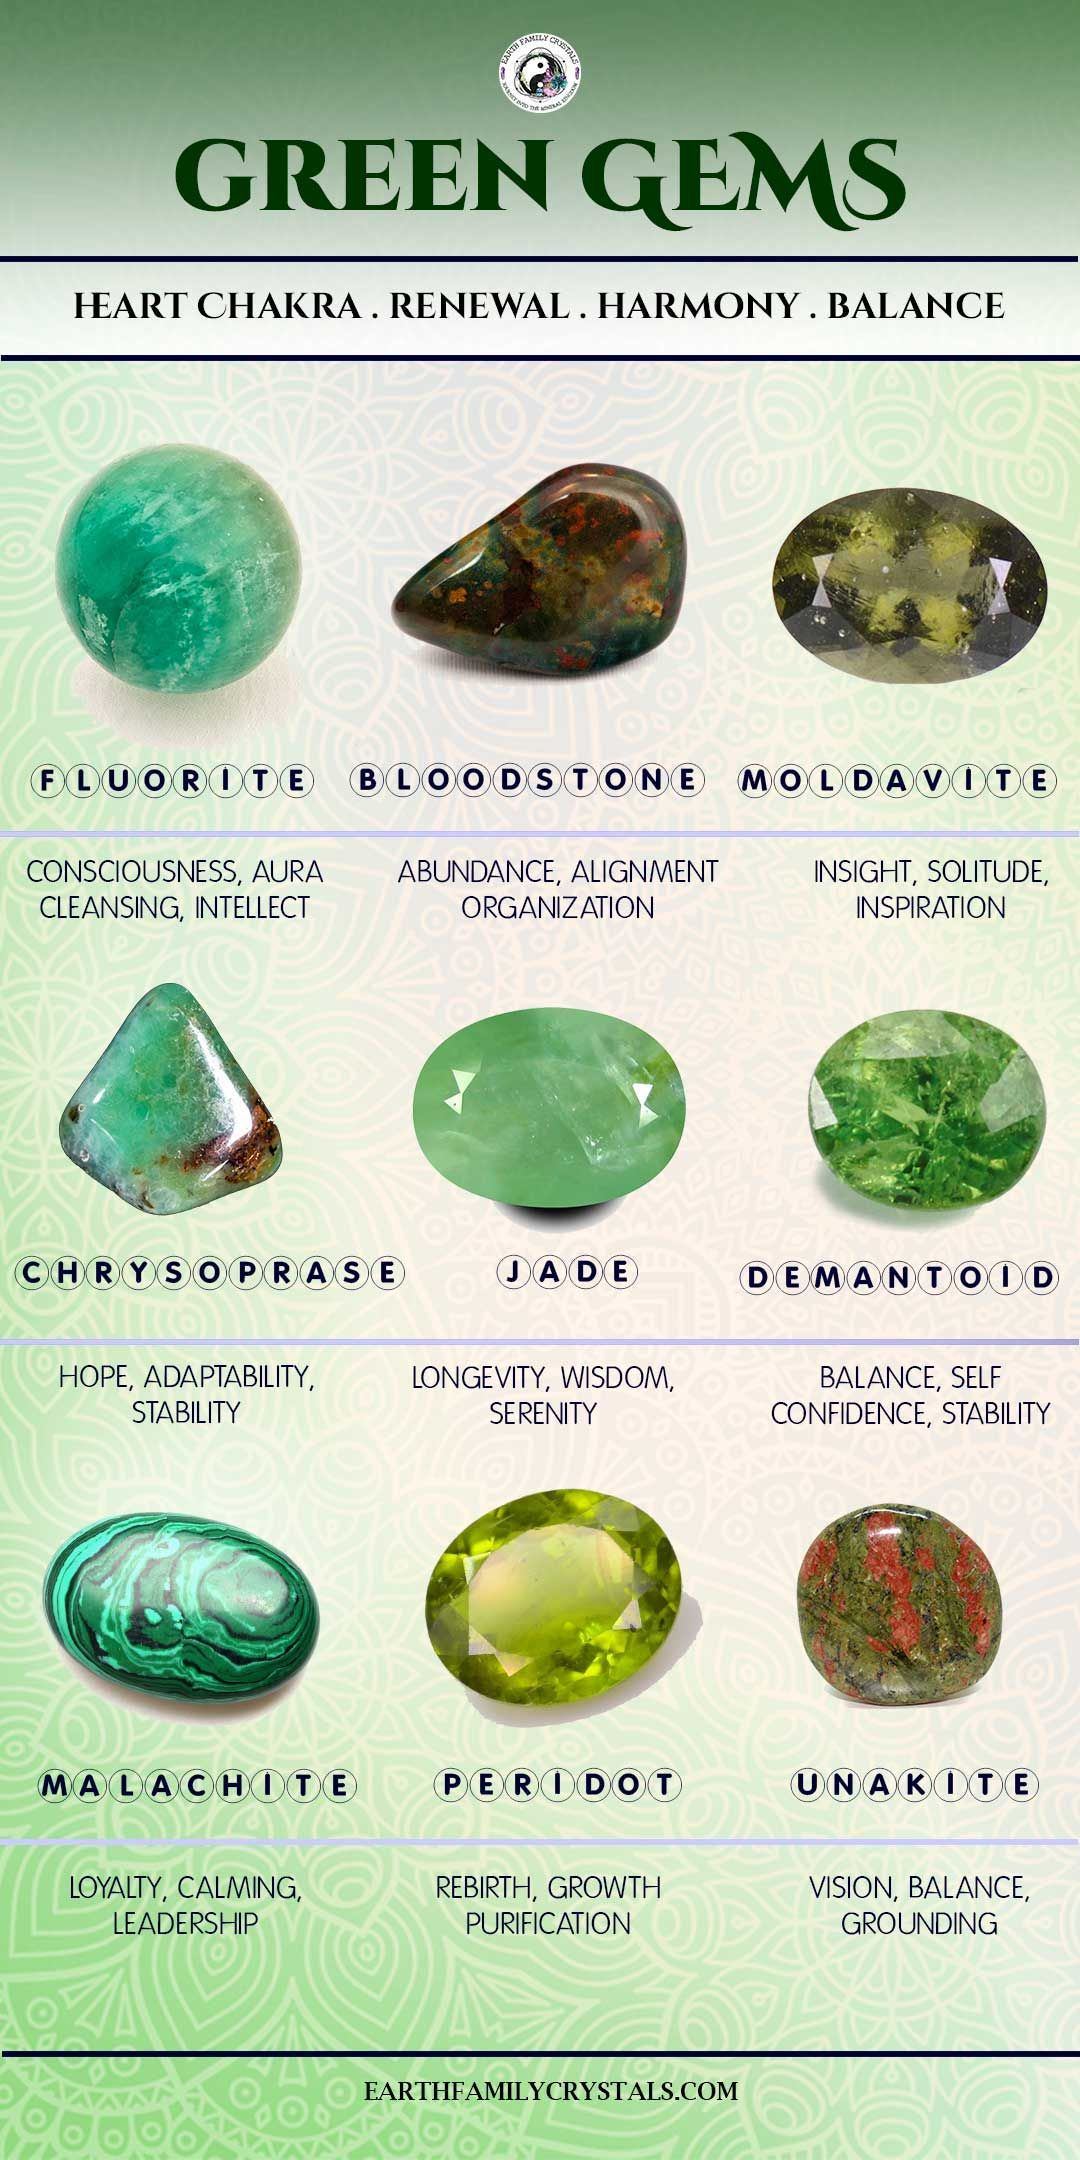 Crystals Gemstone Jewelry Unique Gift Ideas Crystal Healing Stones Crystals Healing Properties Green Gems